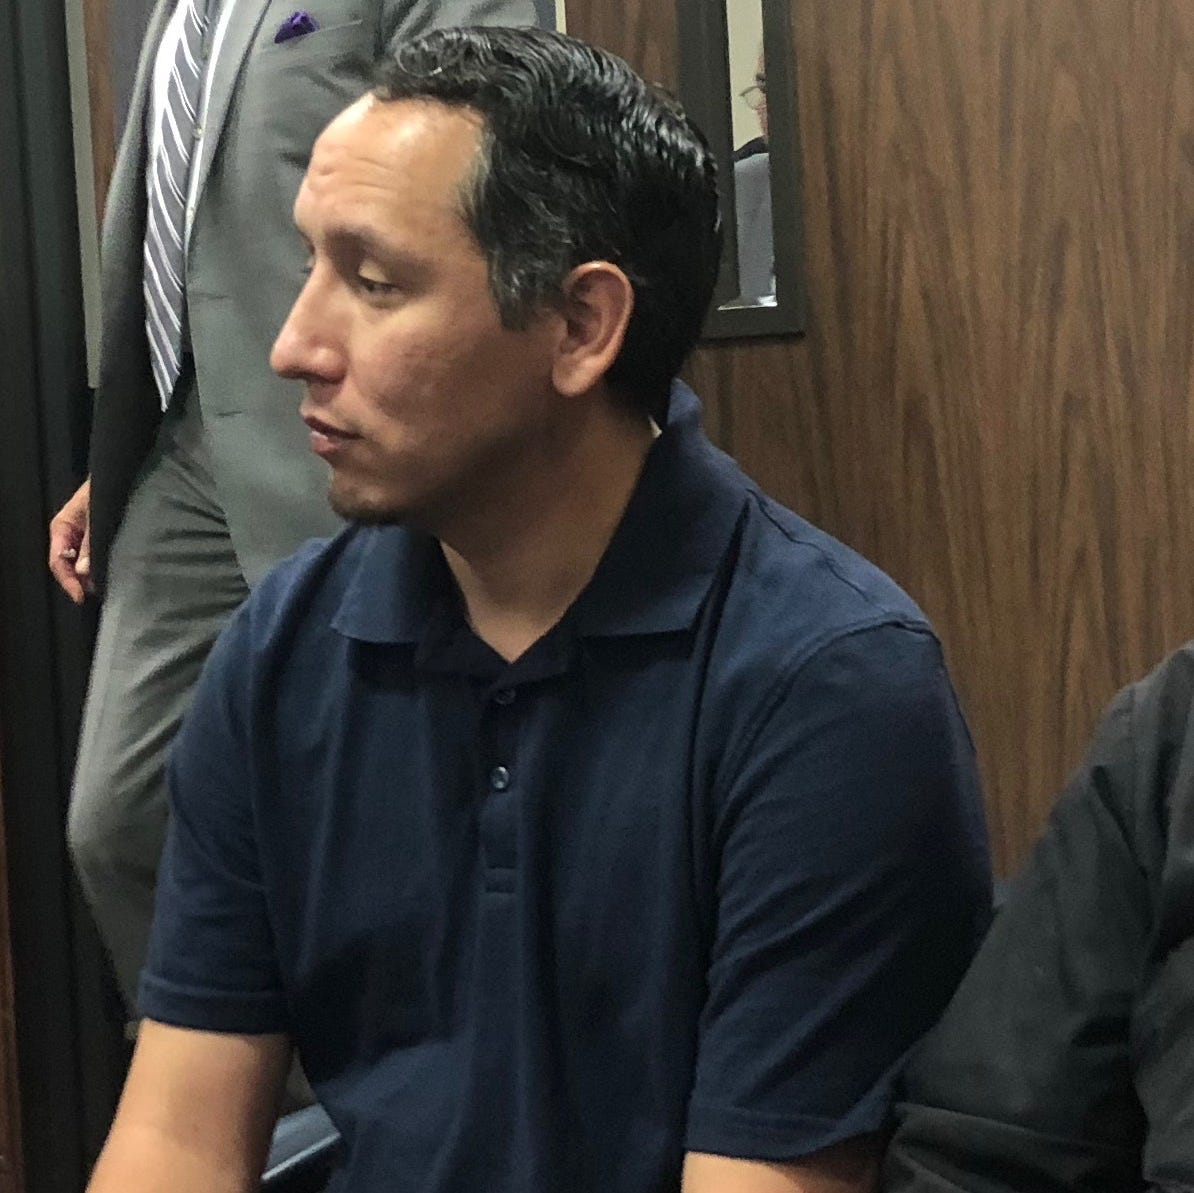 Former Corpus Christi City Council candidate Eric Tunchez appears in court for felony case